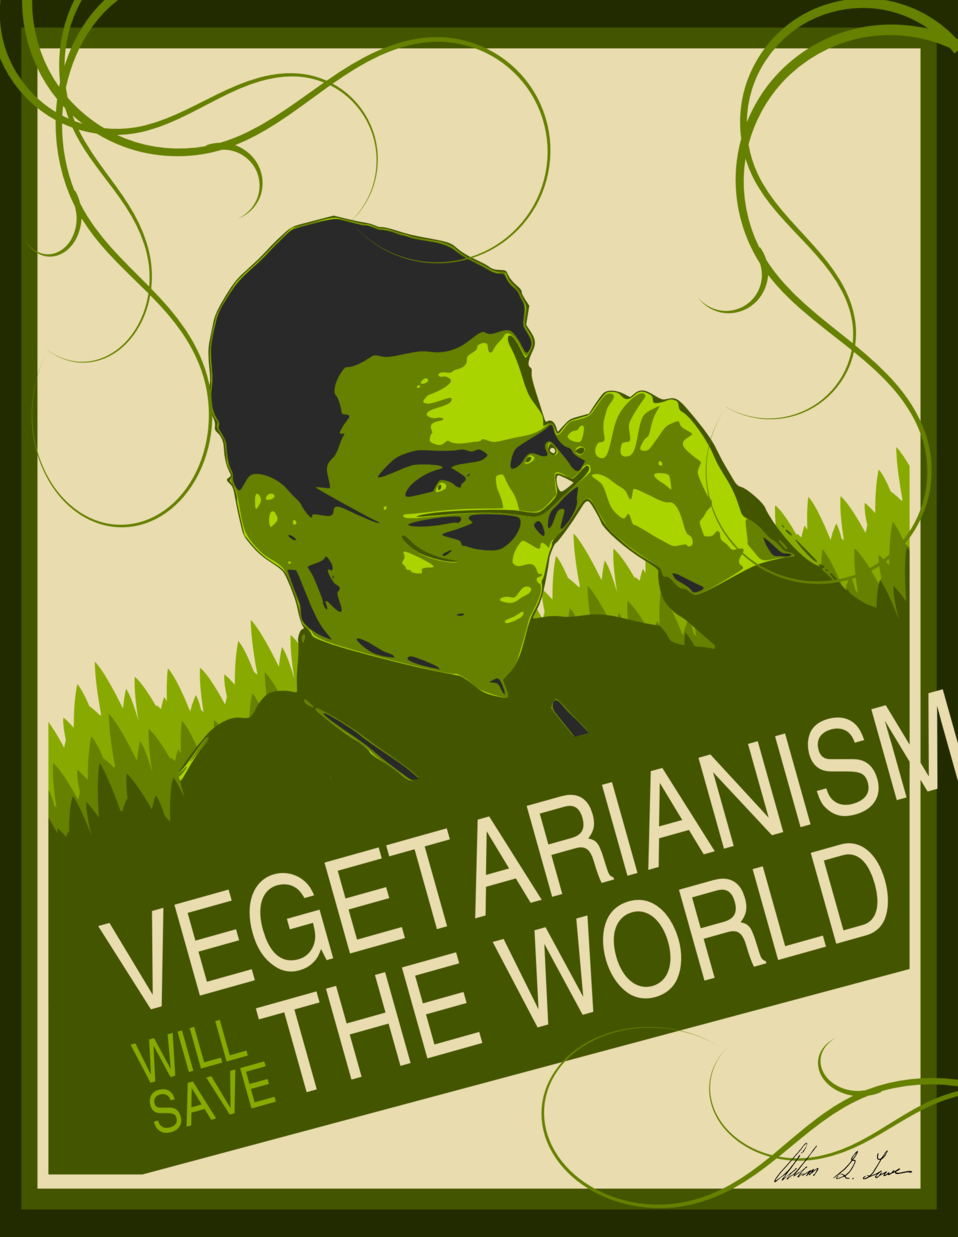 Vegetarianism Will Save The World